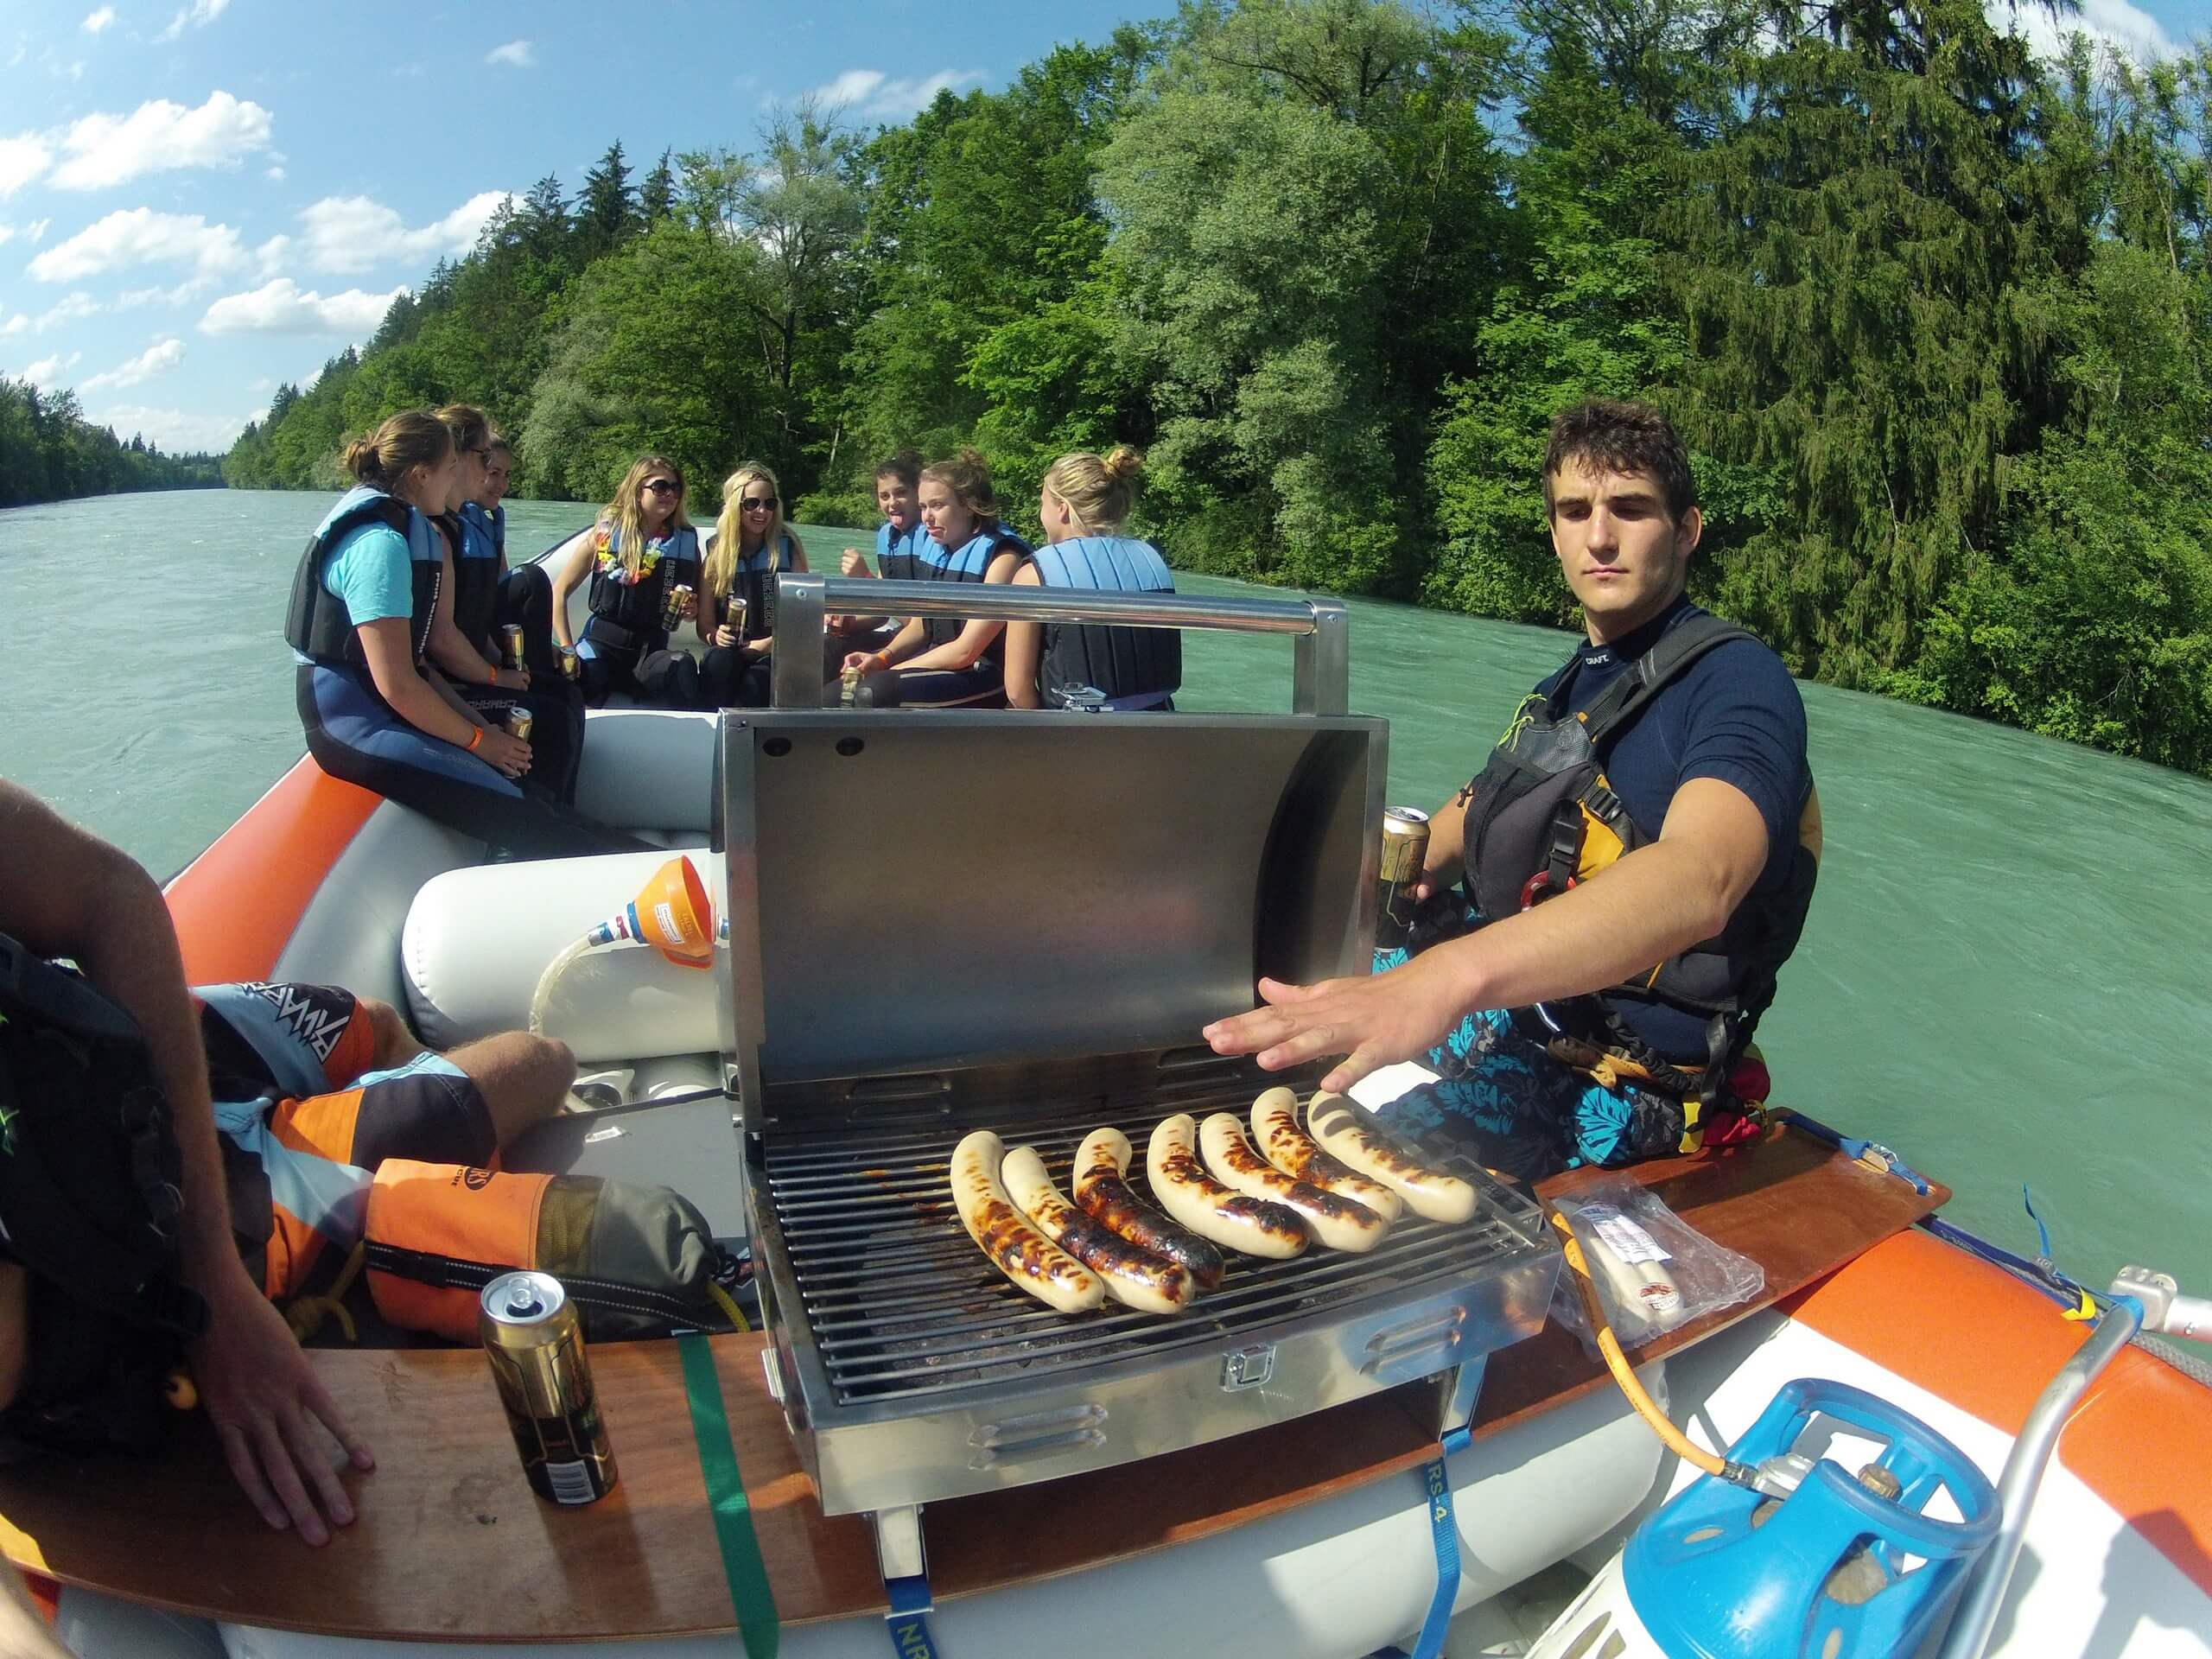 schlauchboot-aare-barbecue-outdoor-interlaken-sommer-thun-bern